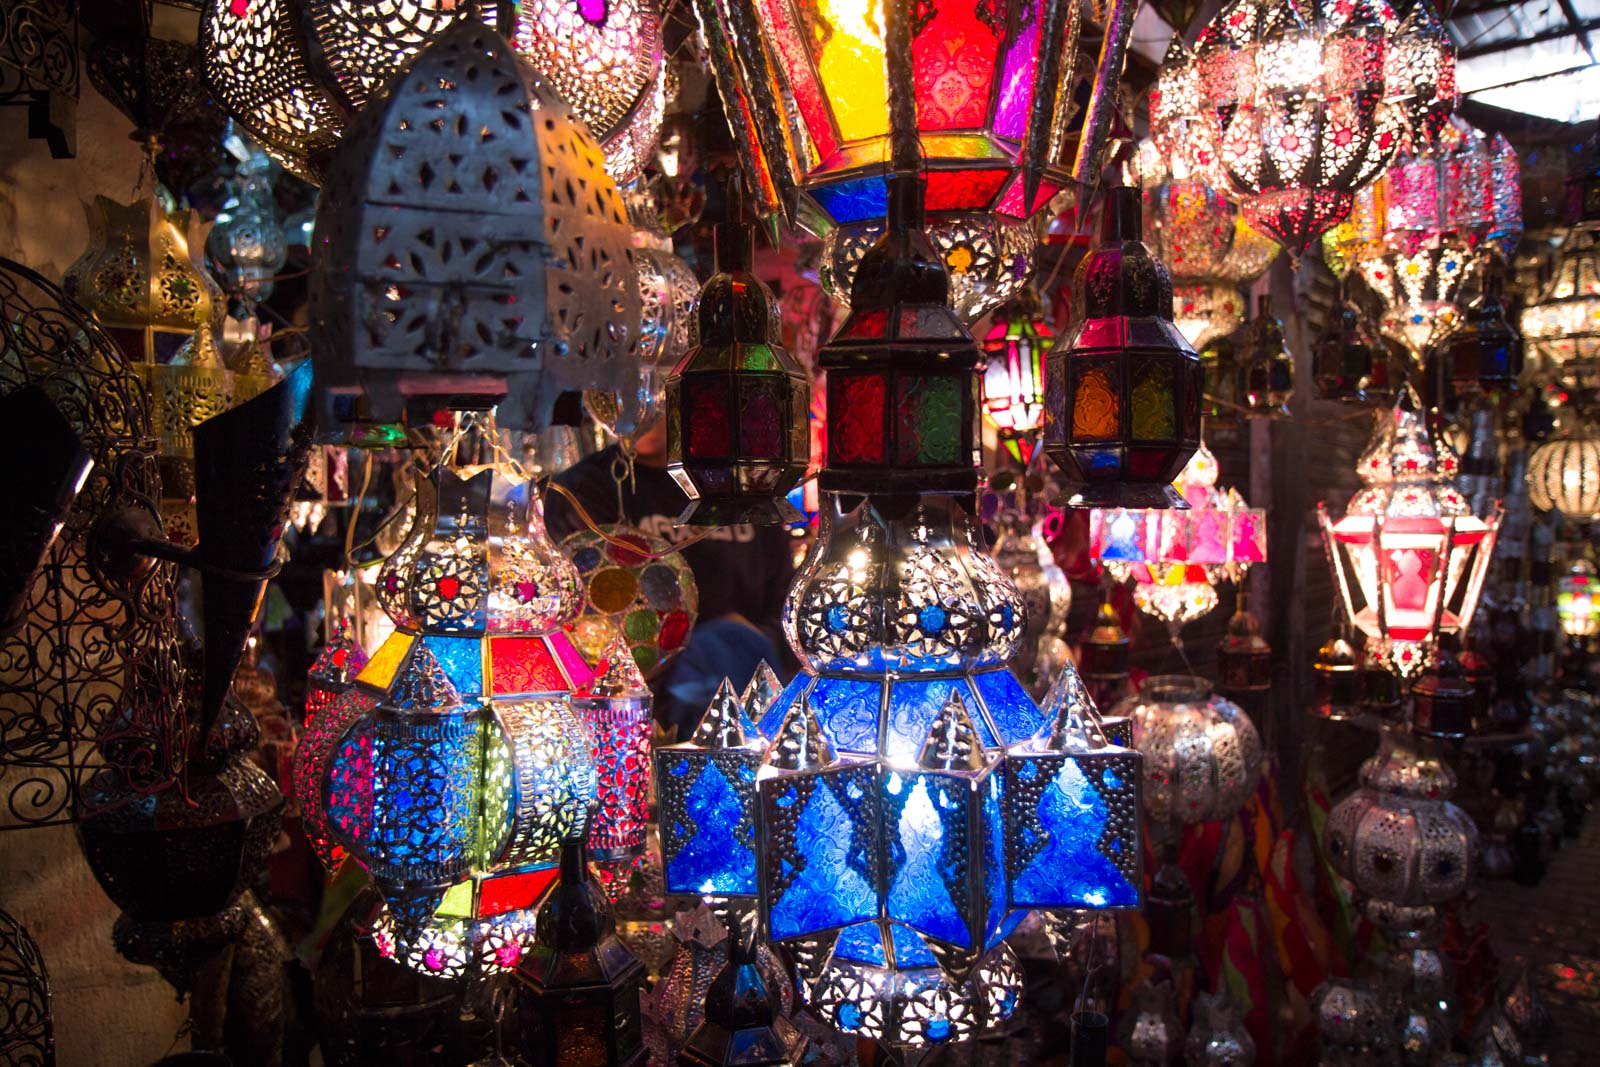 Marrakech souks in the medina, Morocco